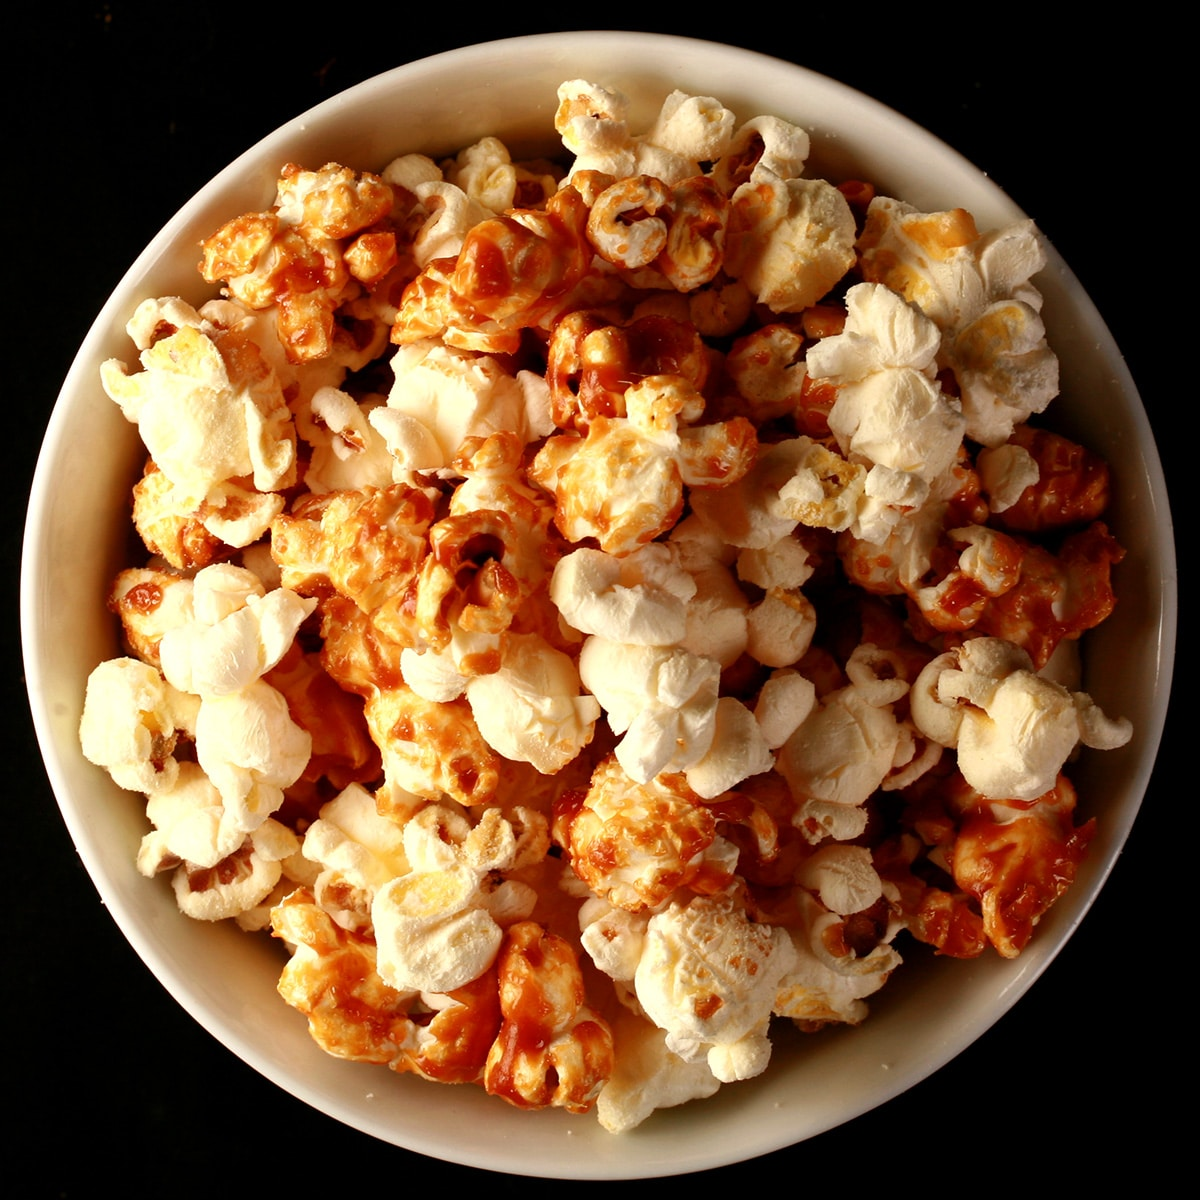 Close up photo of a bowl of two-tone popcorn: Maple White Cheddar Popcorn. Half of the popcorn is covered with maple caramel, the other half is white - white cheddar.